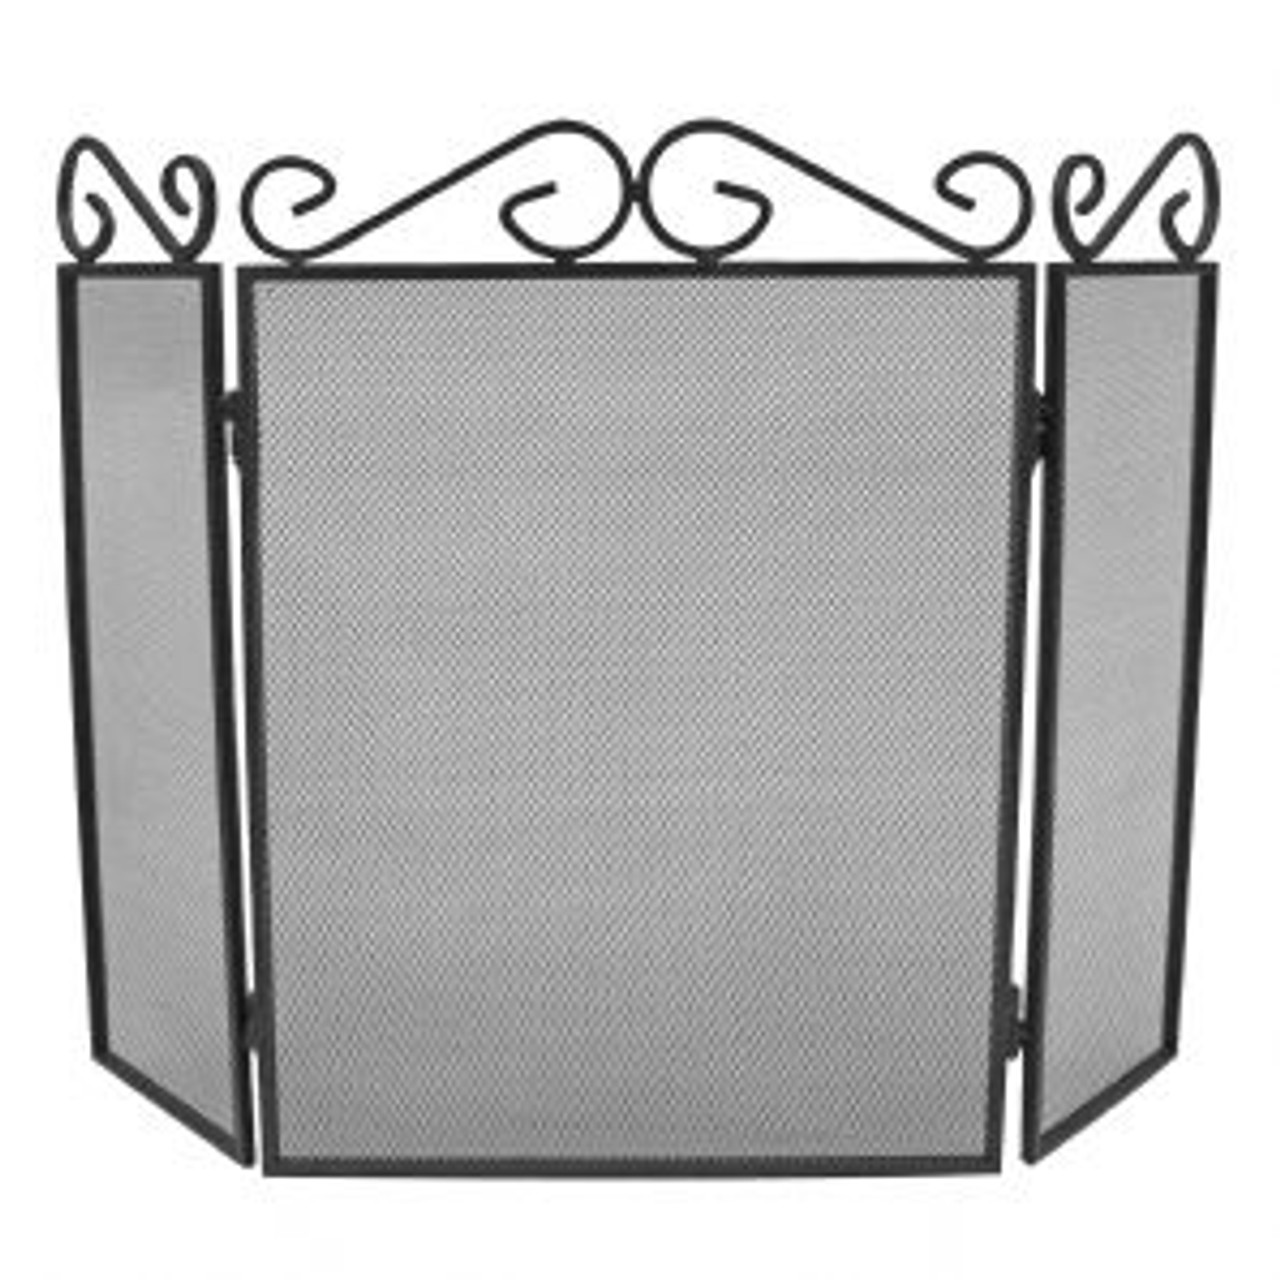 3 Fold Scroll Top Fireguard Black